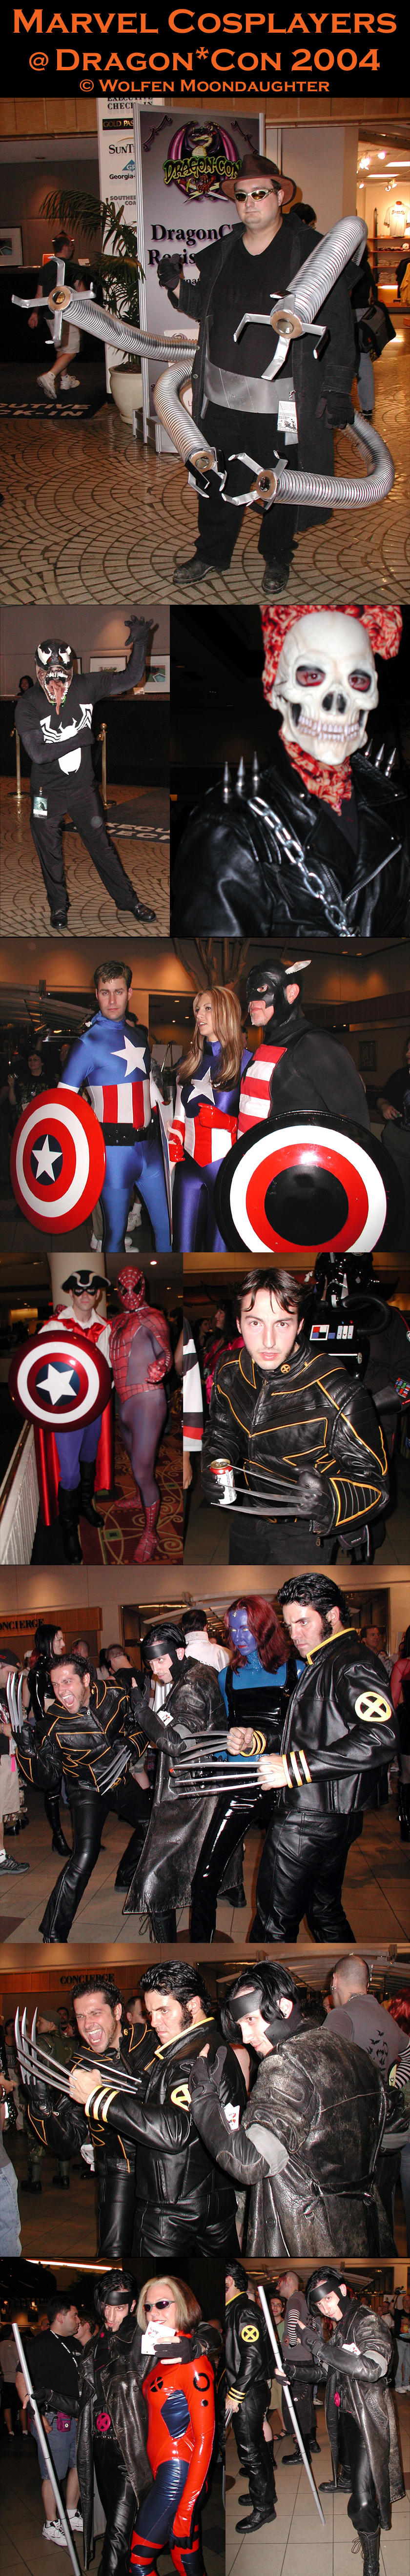 DragonCon 2004: Marvel Cosplay by CanisCamera